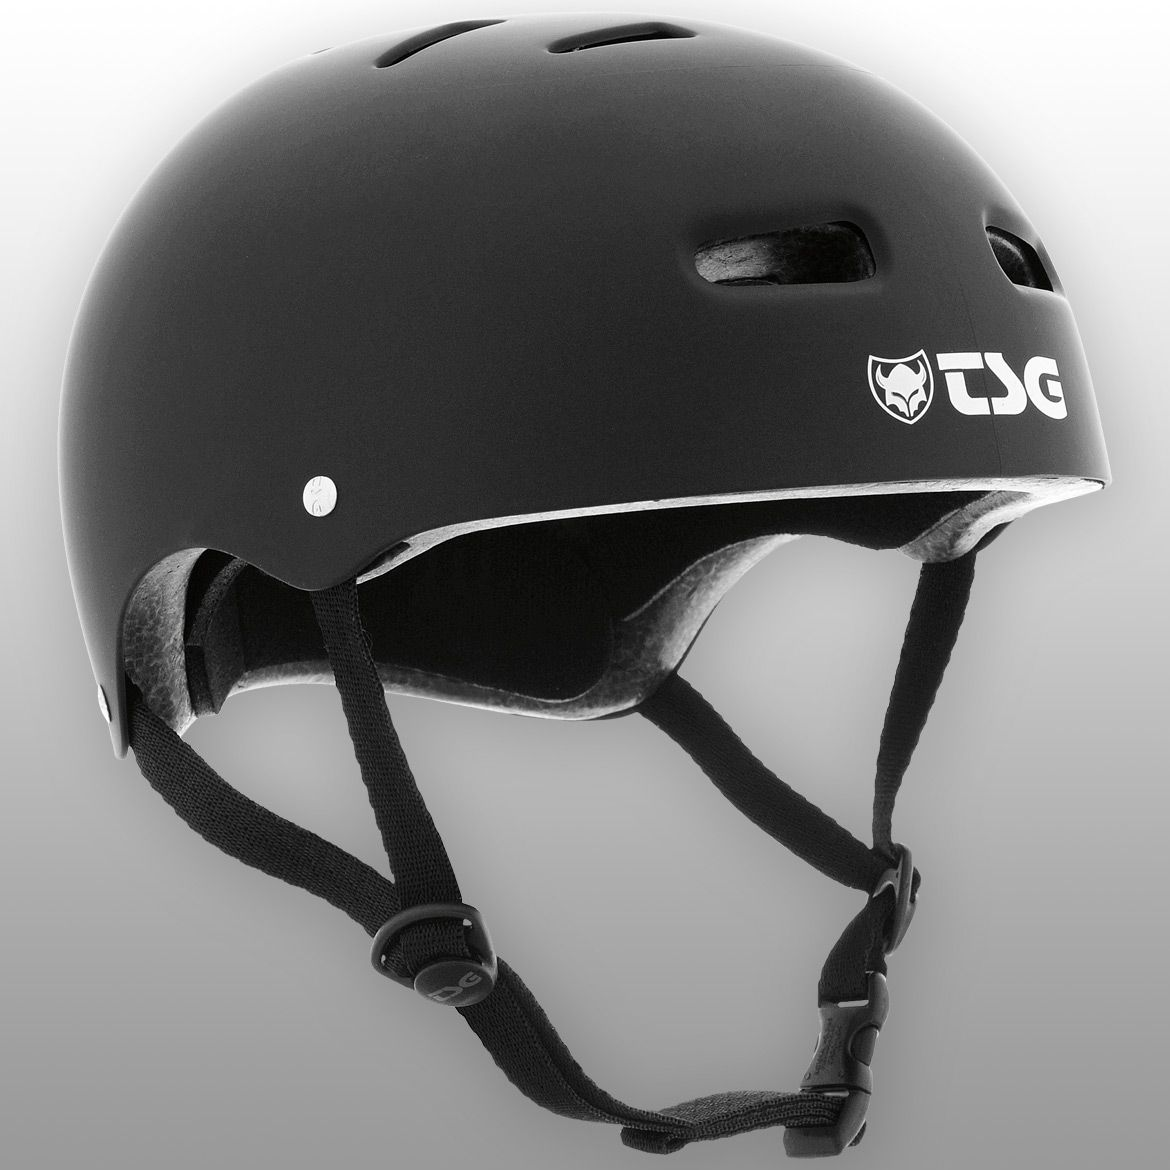 My helmet. Need to get some stickers and settle on a name